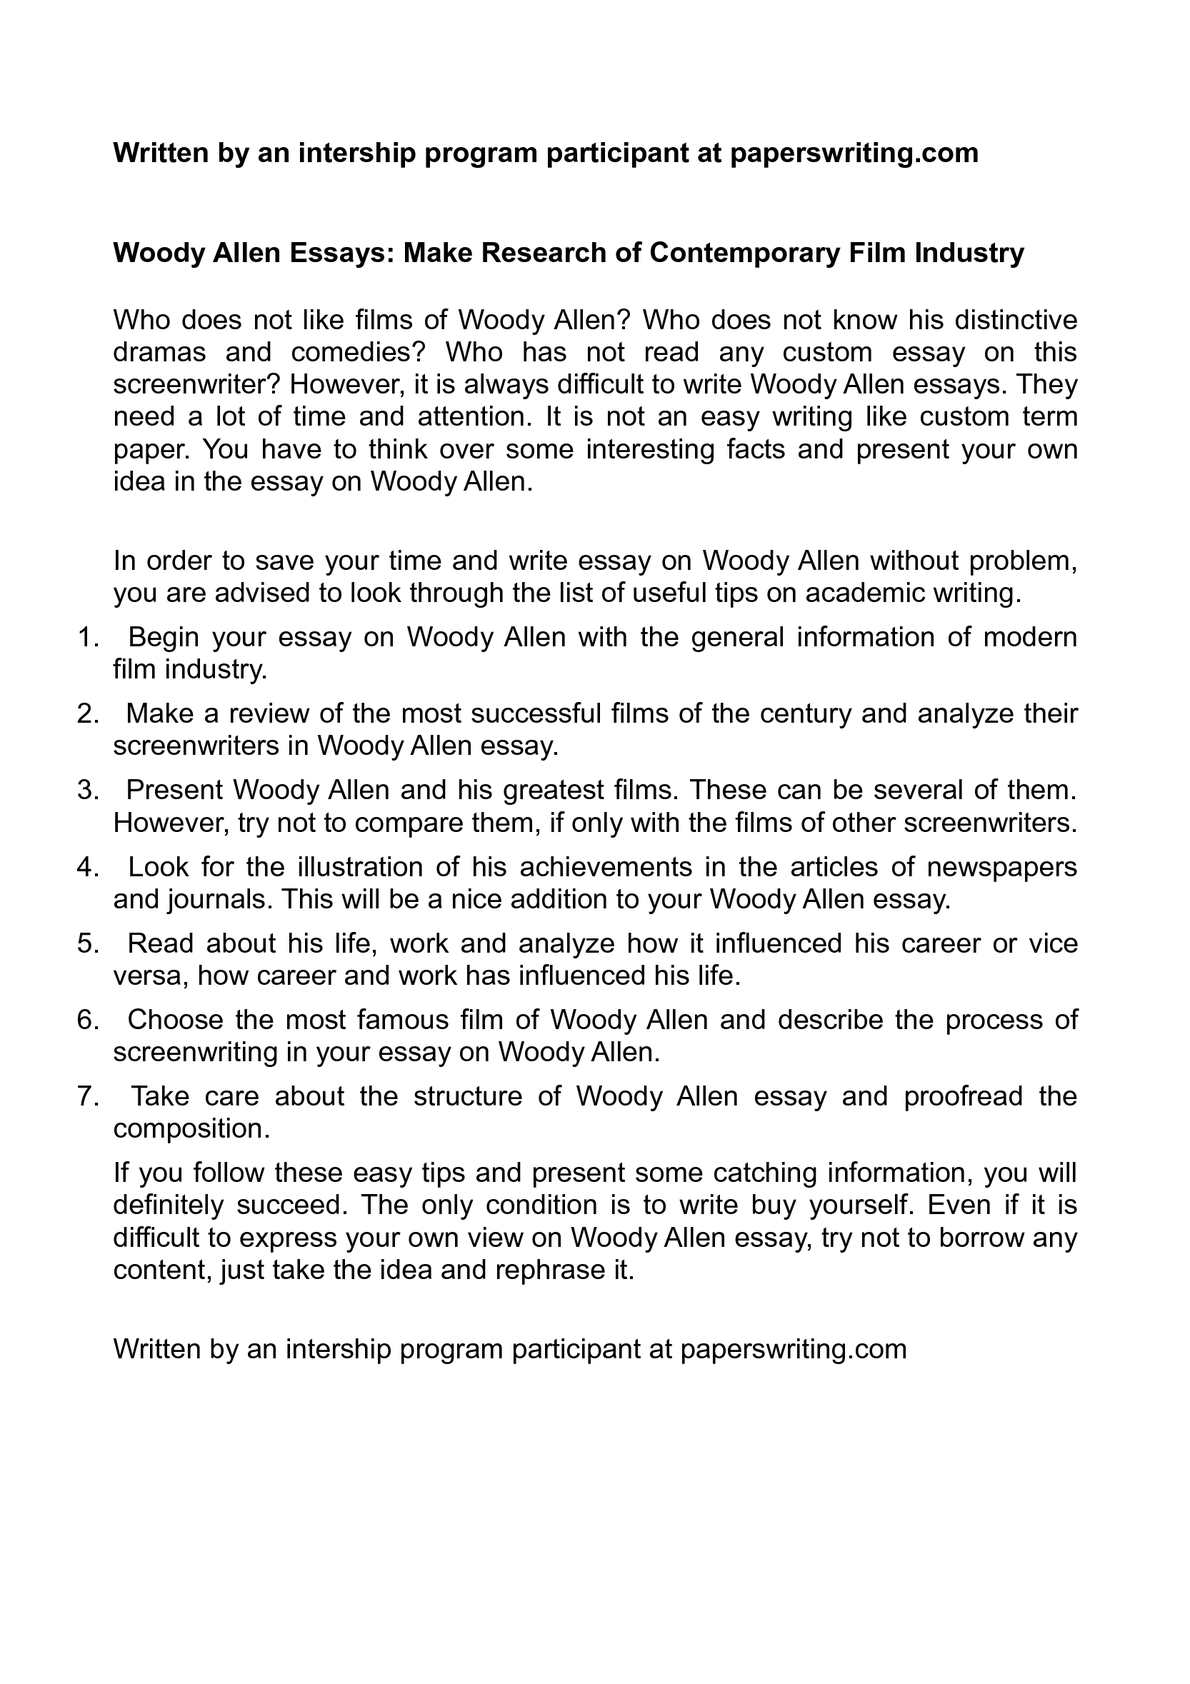 Calamo  Woody Allen Essays Make Research Of Contemporary Film  Calamo  Woody Allen Essays Make Research Of Contemporary Film Industry High School Application Essay Sample also The Benefits Of Learning English Essay  Essay Proposal Format